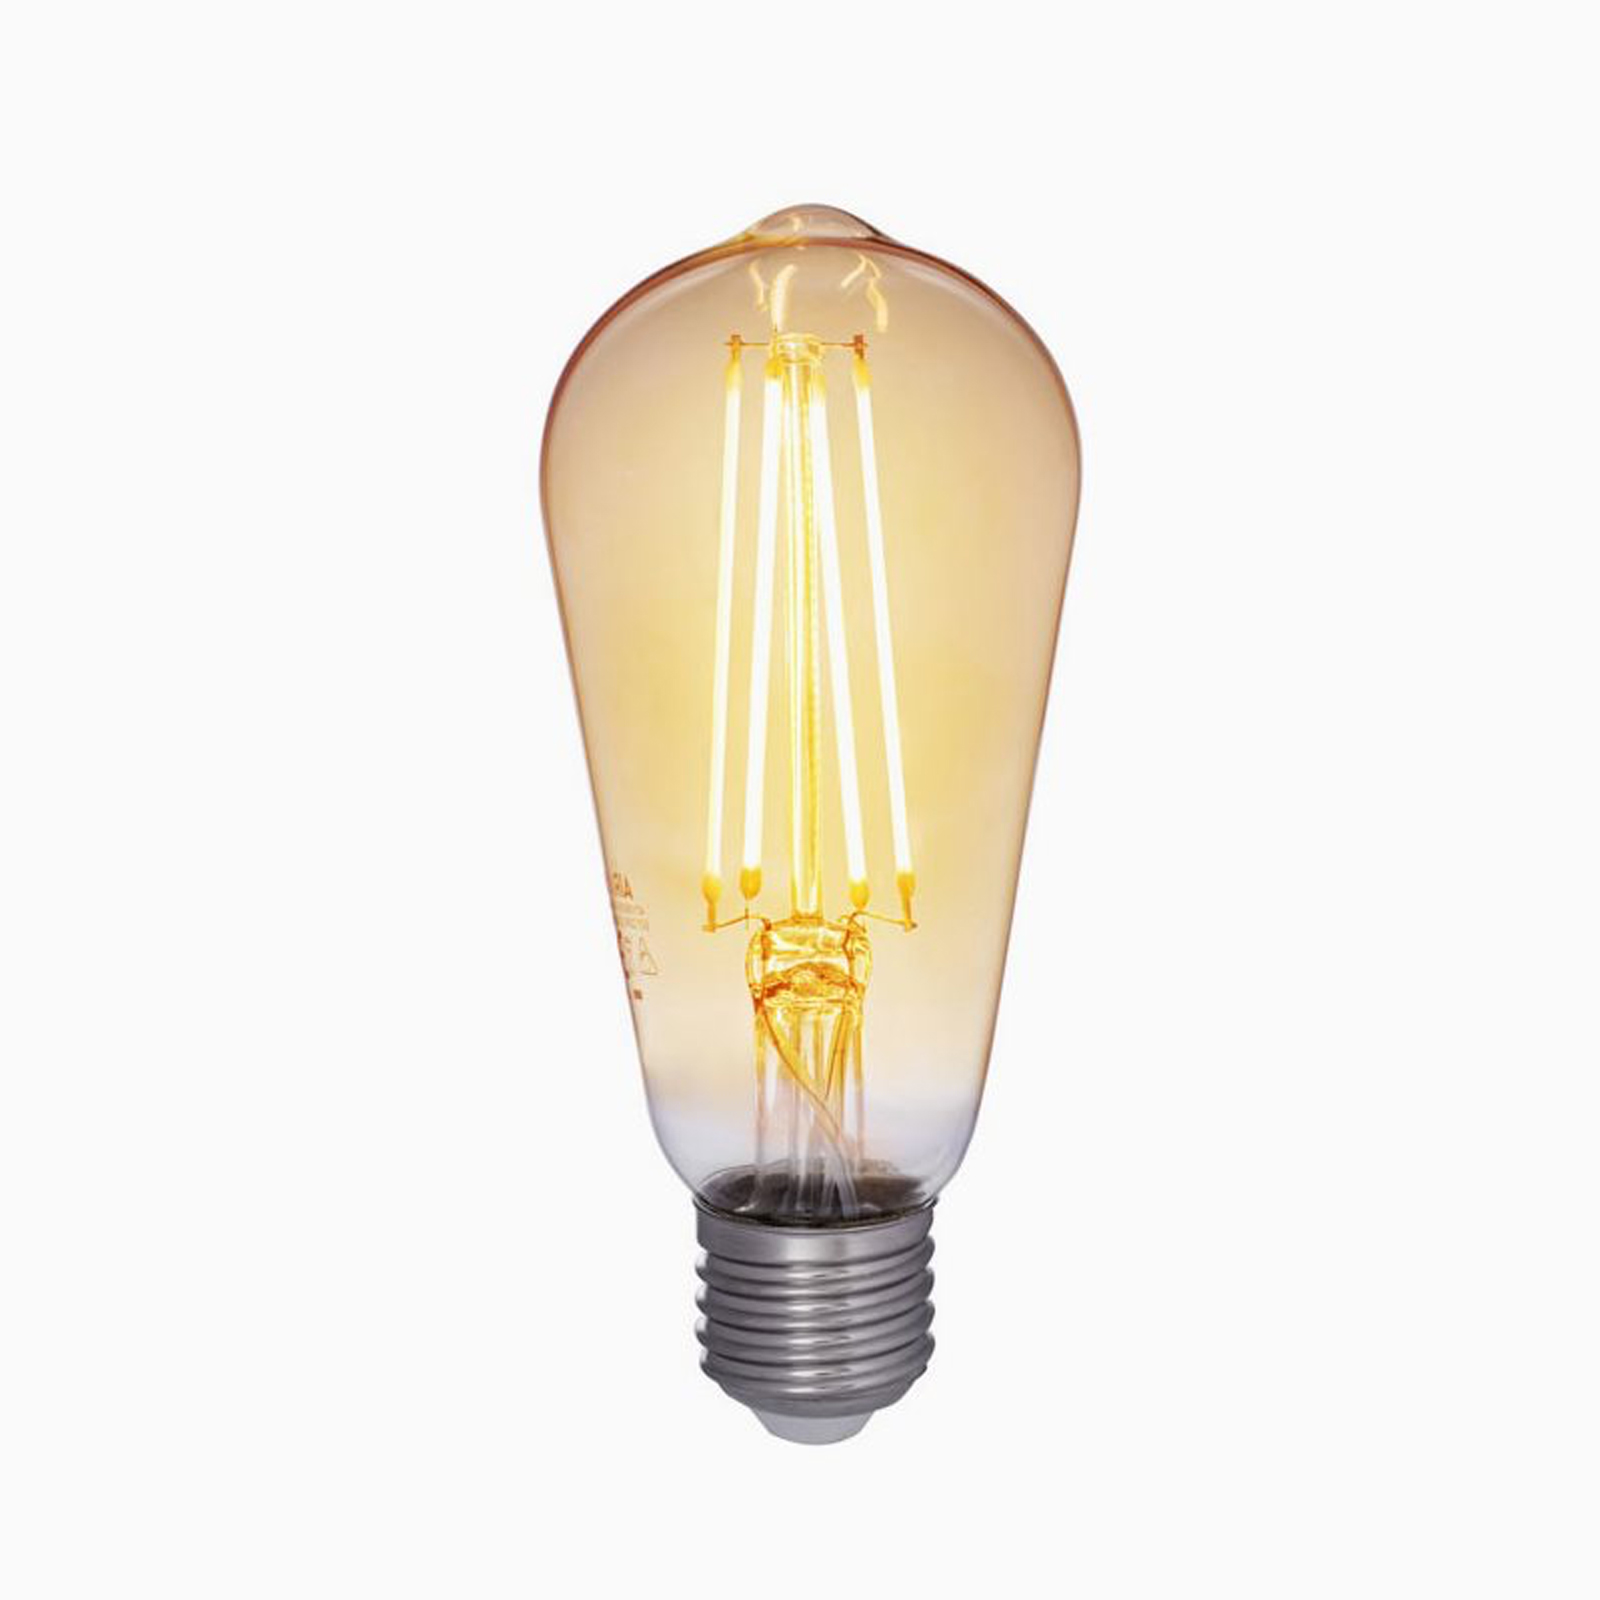 LED-lampa Airma, Decor Amber, 5W, E27